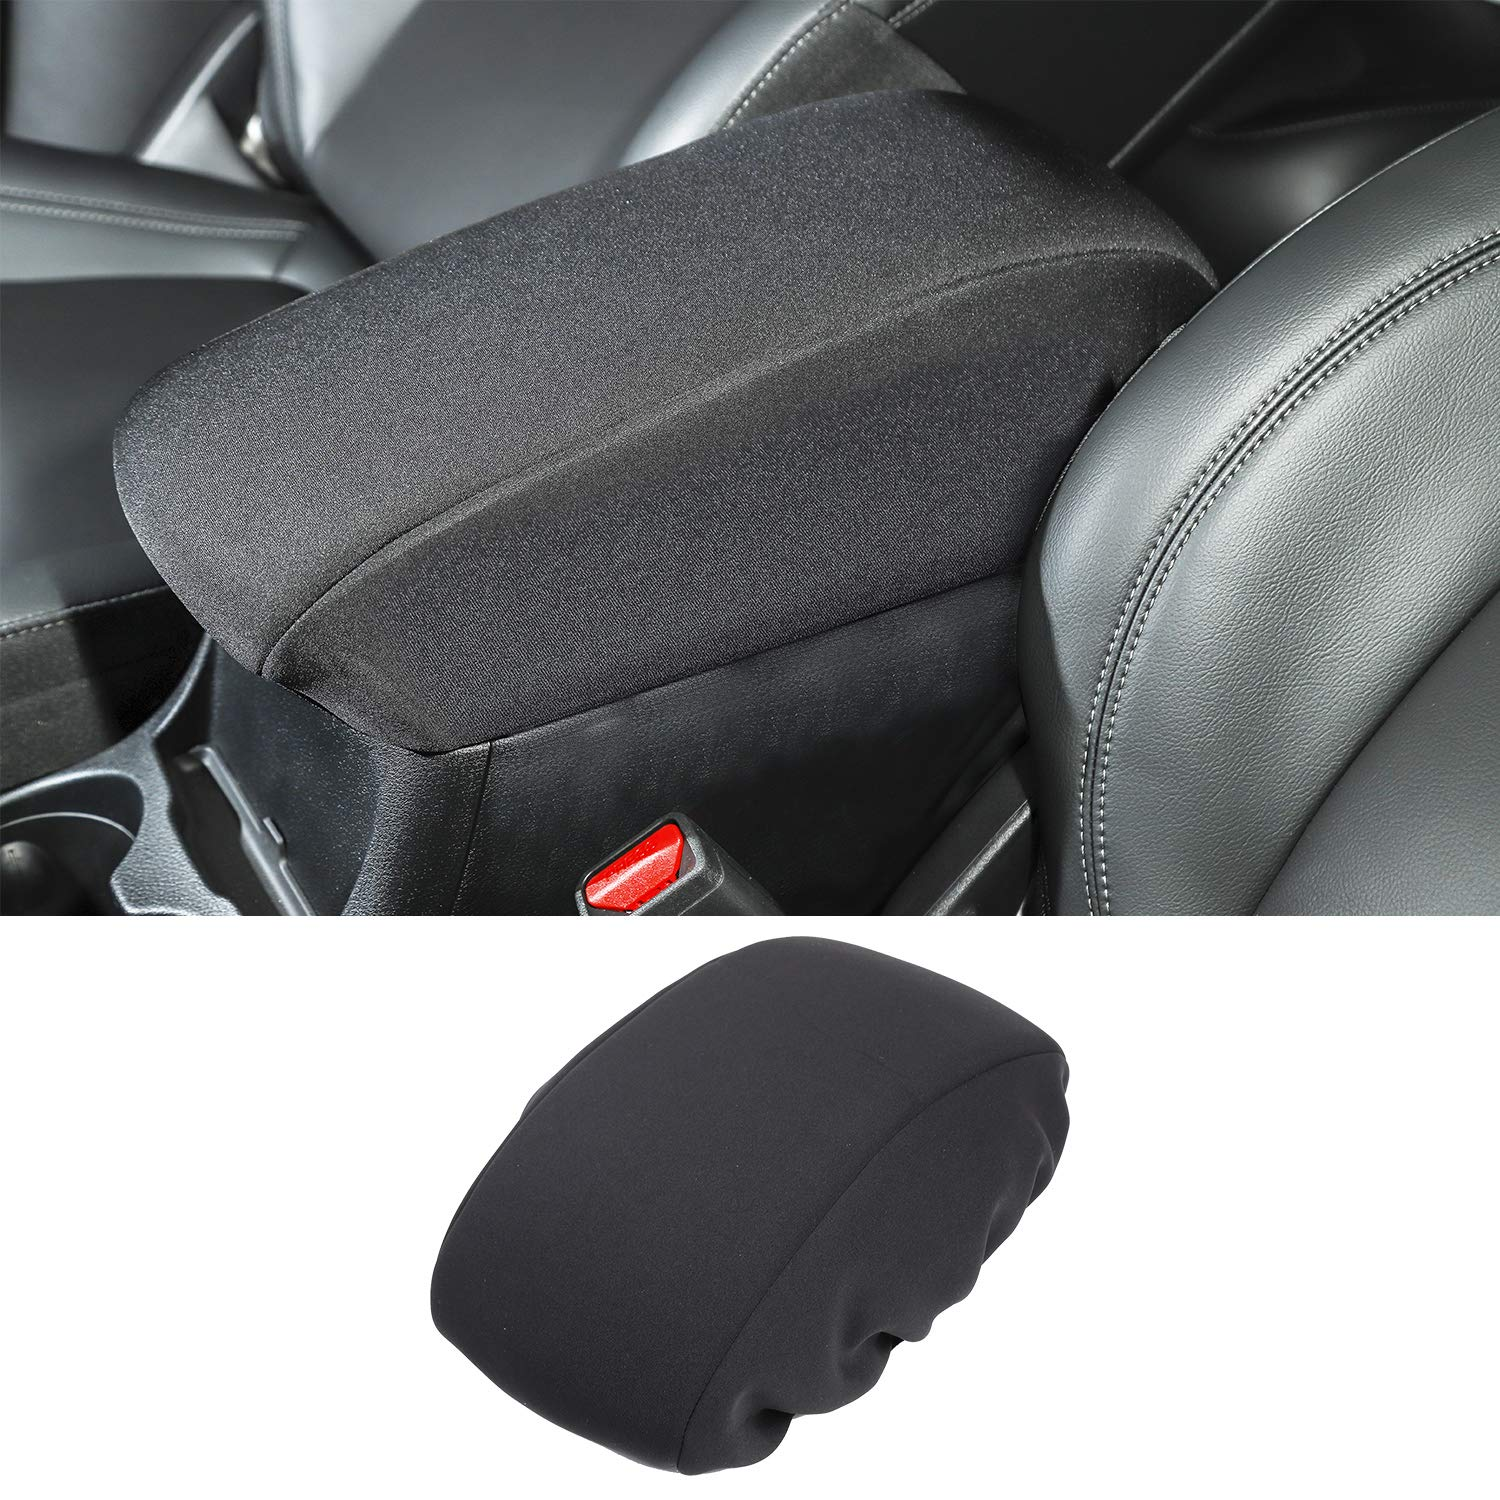 Black JeCar Center Console Cover Neoprene Armrest Pad Cover for 2014-2019 Jeep Cherokee KL